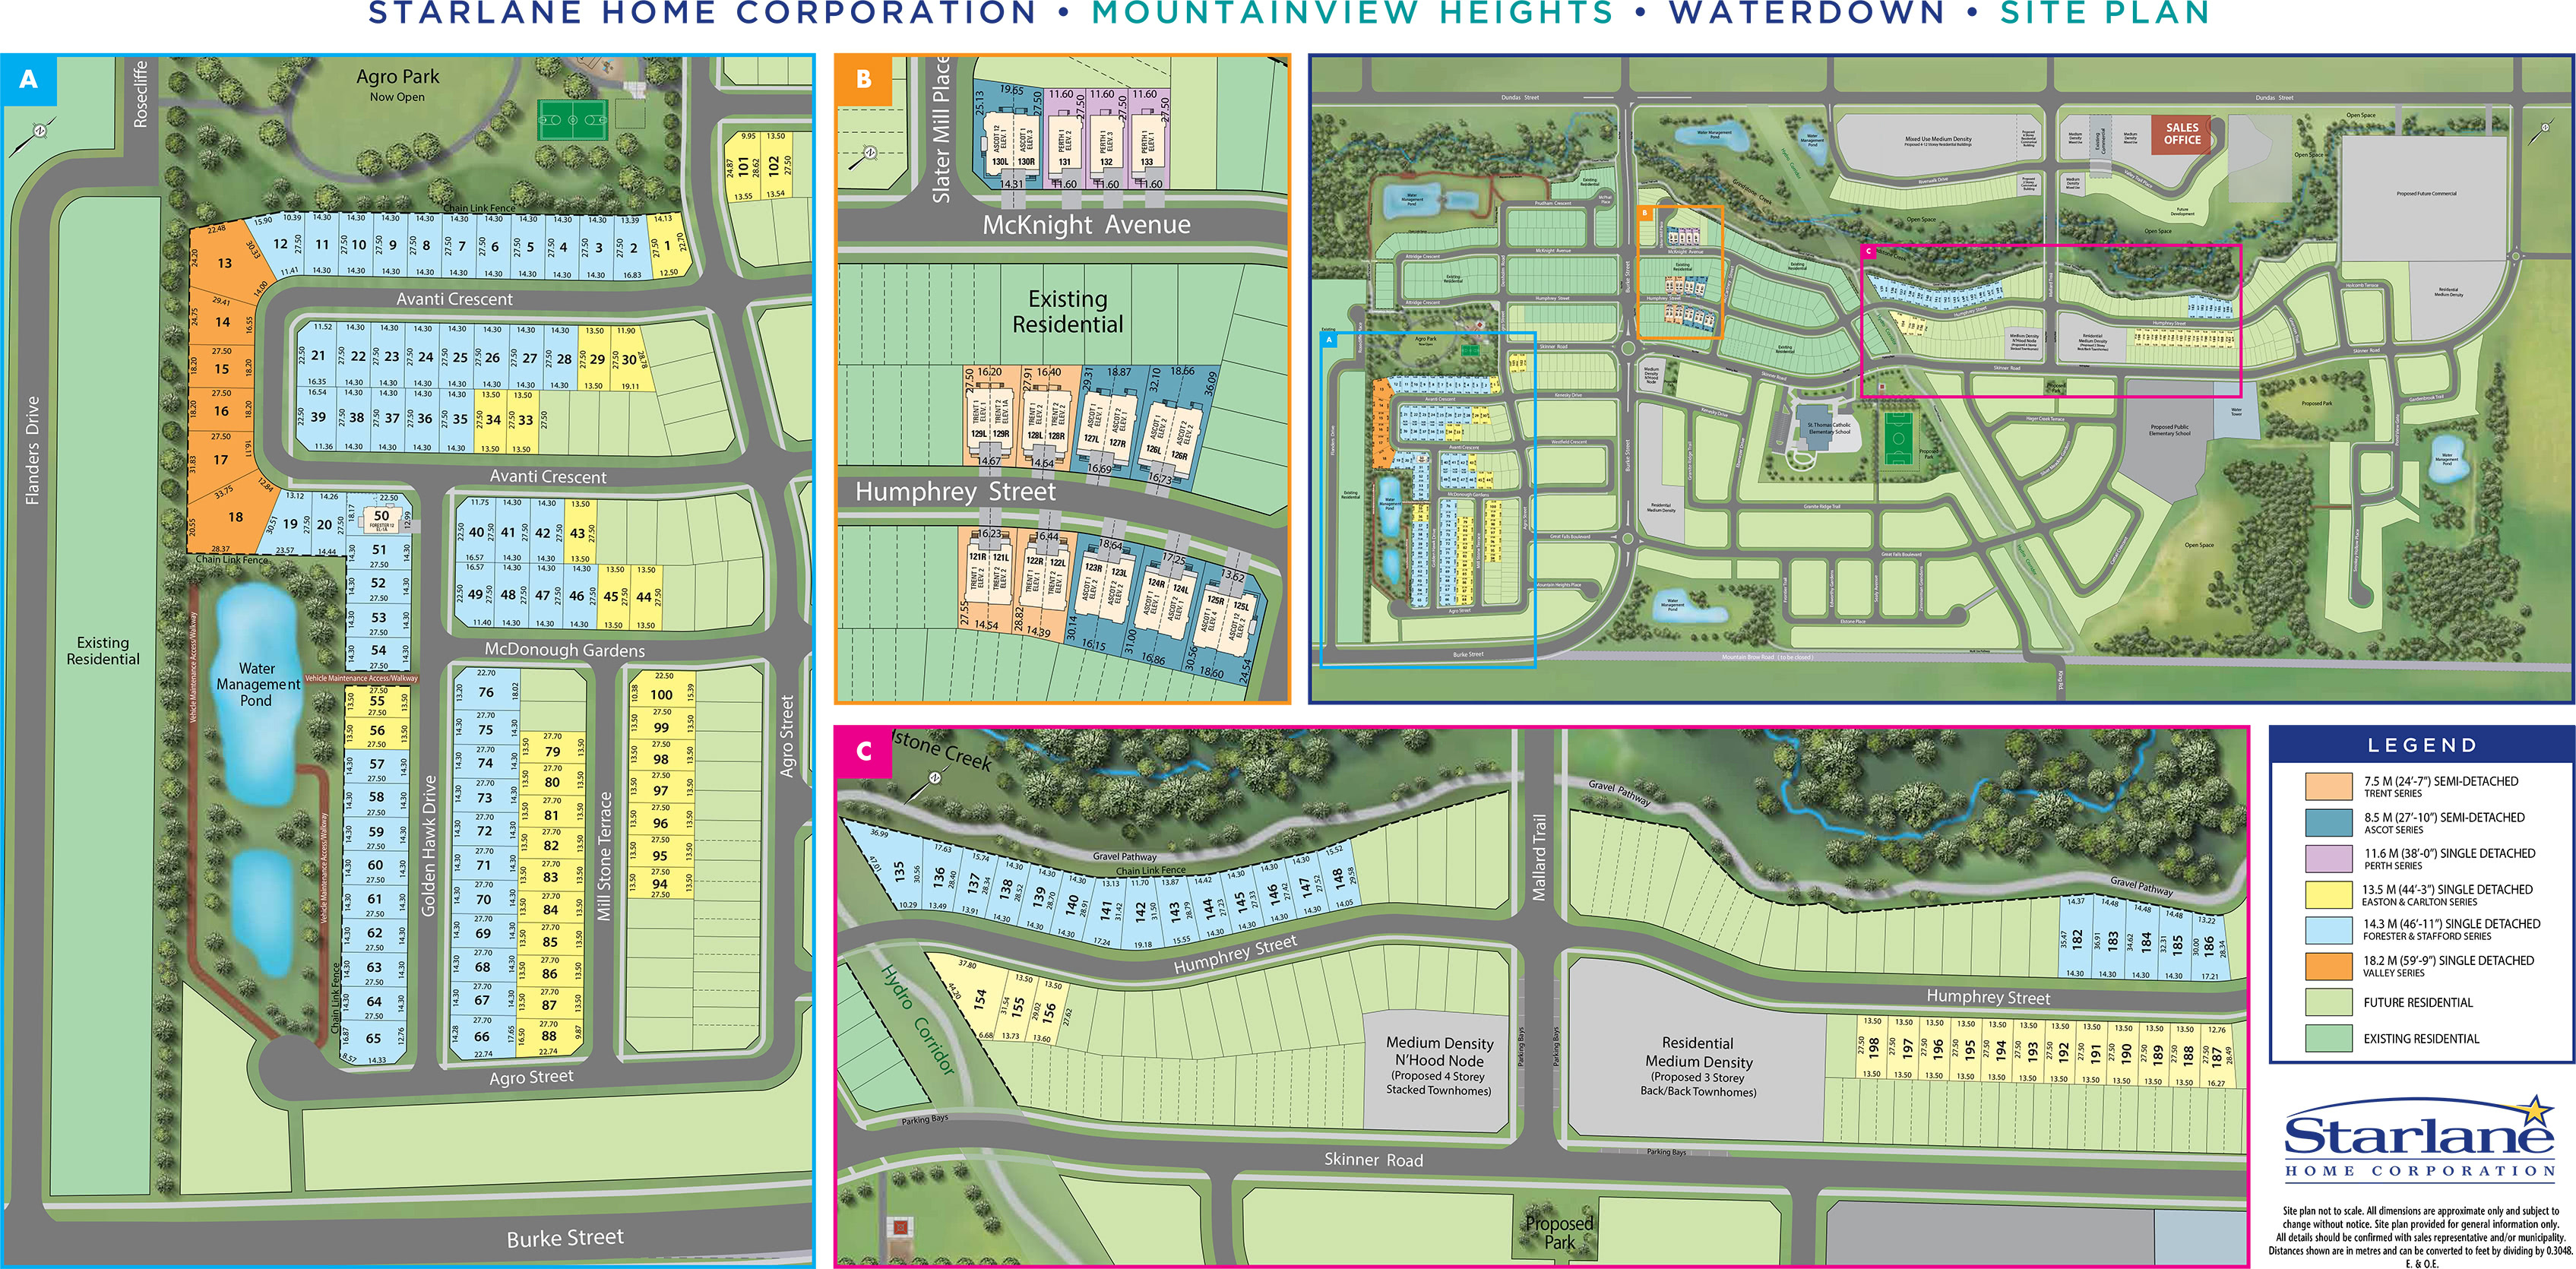 Mountainview Heights Site Plan